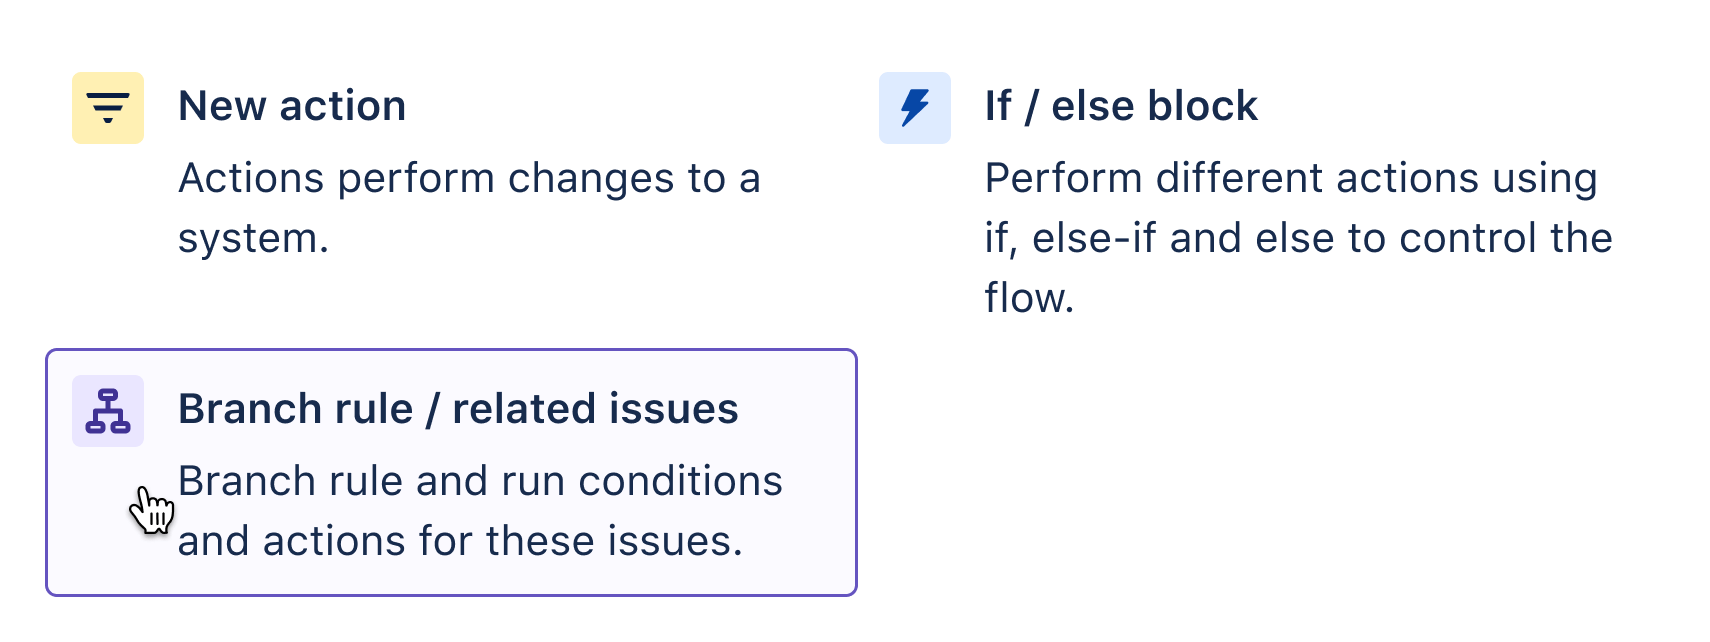 Adding a Branch rule / related issues